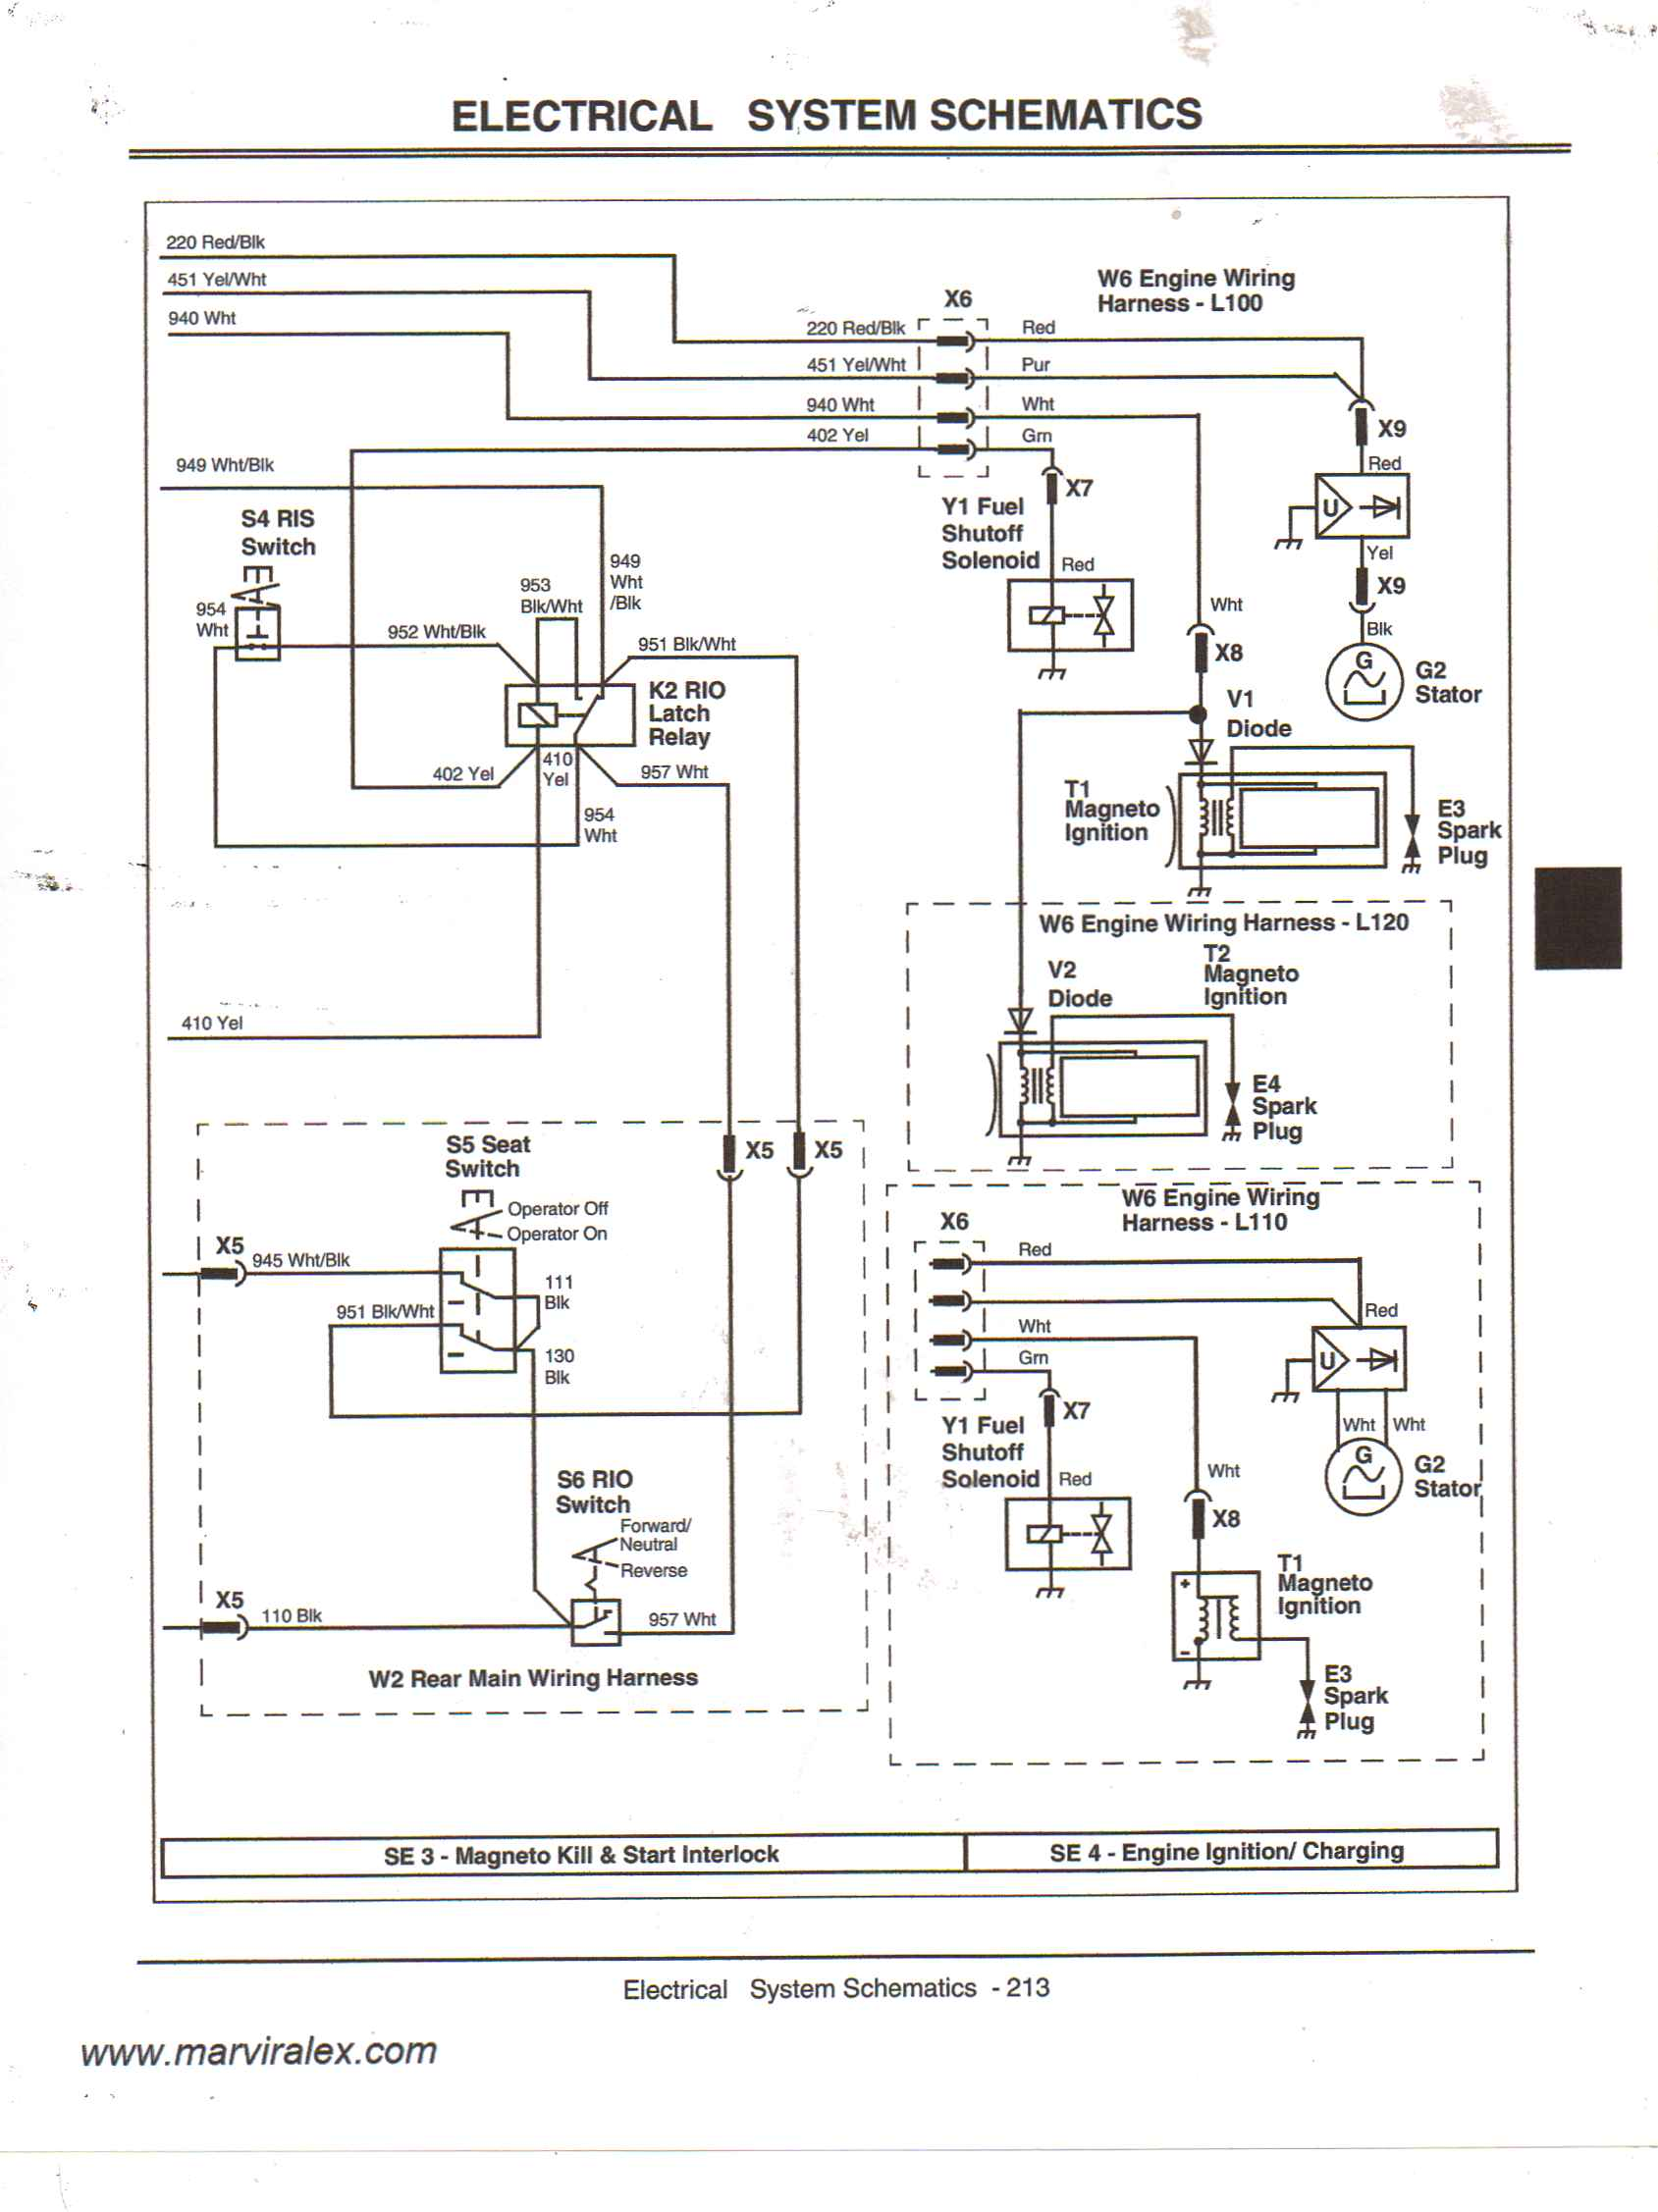 885B0 L110 Wiring Diagram | Digital Resources on john deere 510d backhoe, john deere backhoe wiring diagram, john deere backhoe controls diagram, john deere hydraulic fittings, john deere hydraulic diagram, john deere 310b backhoe parts, backhoe hydraulics diagram, john deere 400 backhoe parts, john deere hydraulic schematics, john deere 410c backhoe, john deere 6400 wiring-diagram, john deere injection pump diagram, john deere backhoe loader, john deere 310c backhoe, john deere 10a backhoe specs, john deere ignition wiring diagram, john deere 300b backhoe parts, john deere 410b backhoe, john deere 310 backhoe parts,